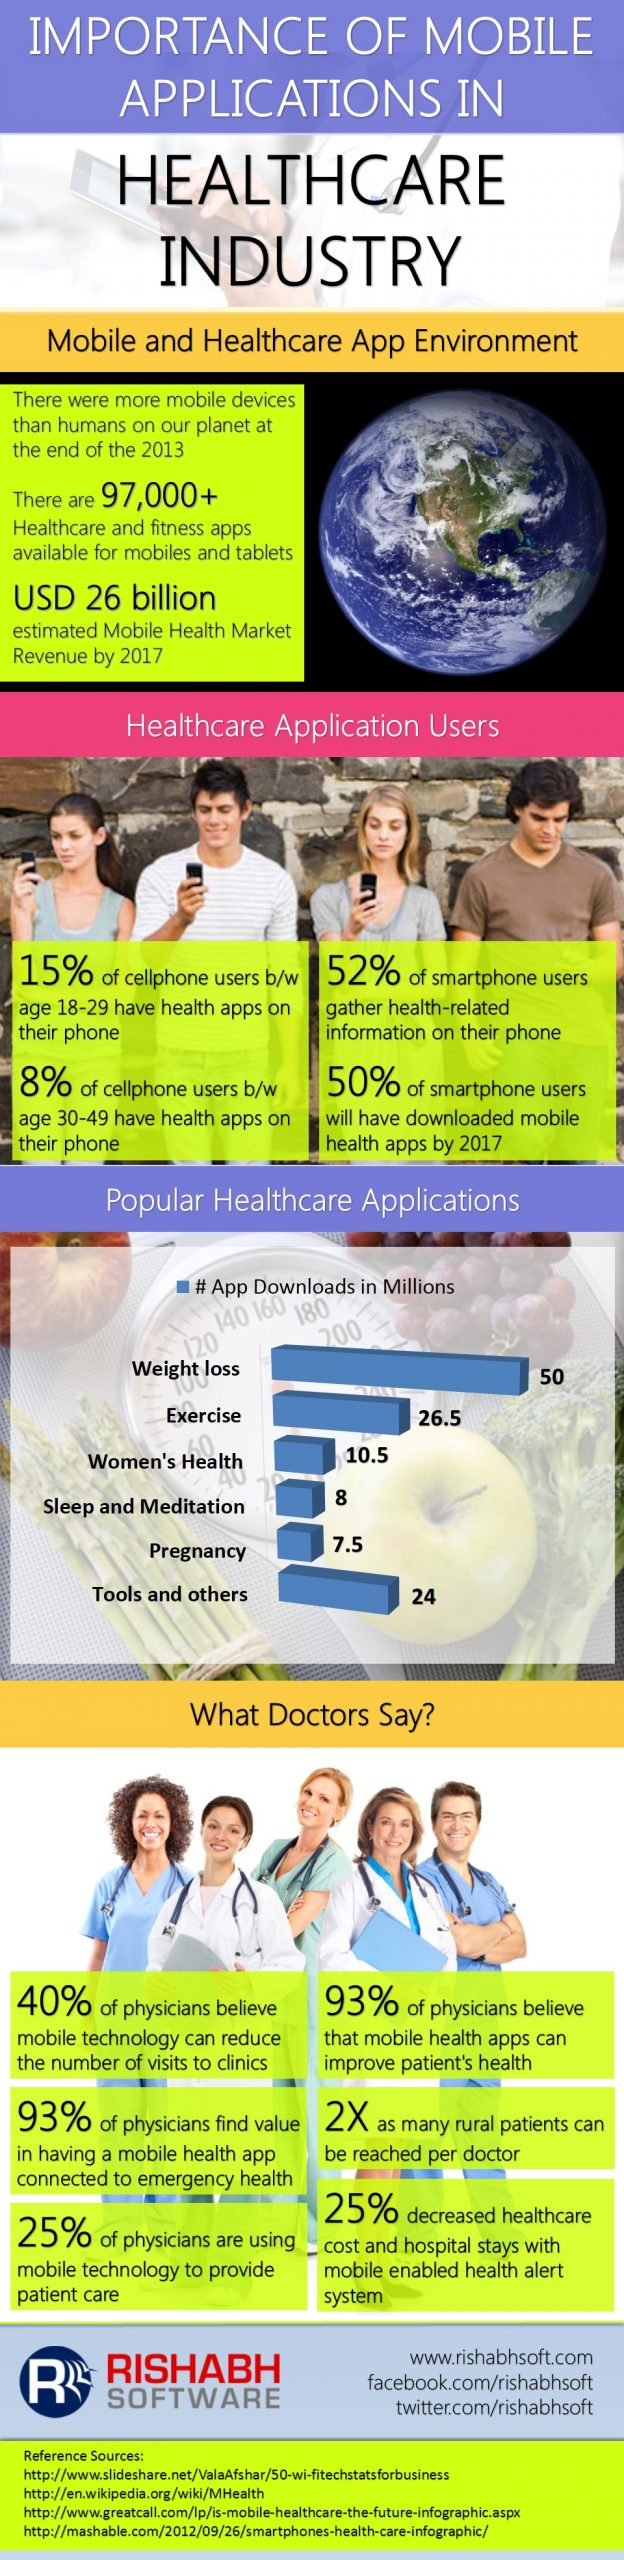 Importance-of-Mobile-Applications-in-Healthcare-Industry